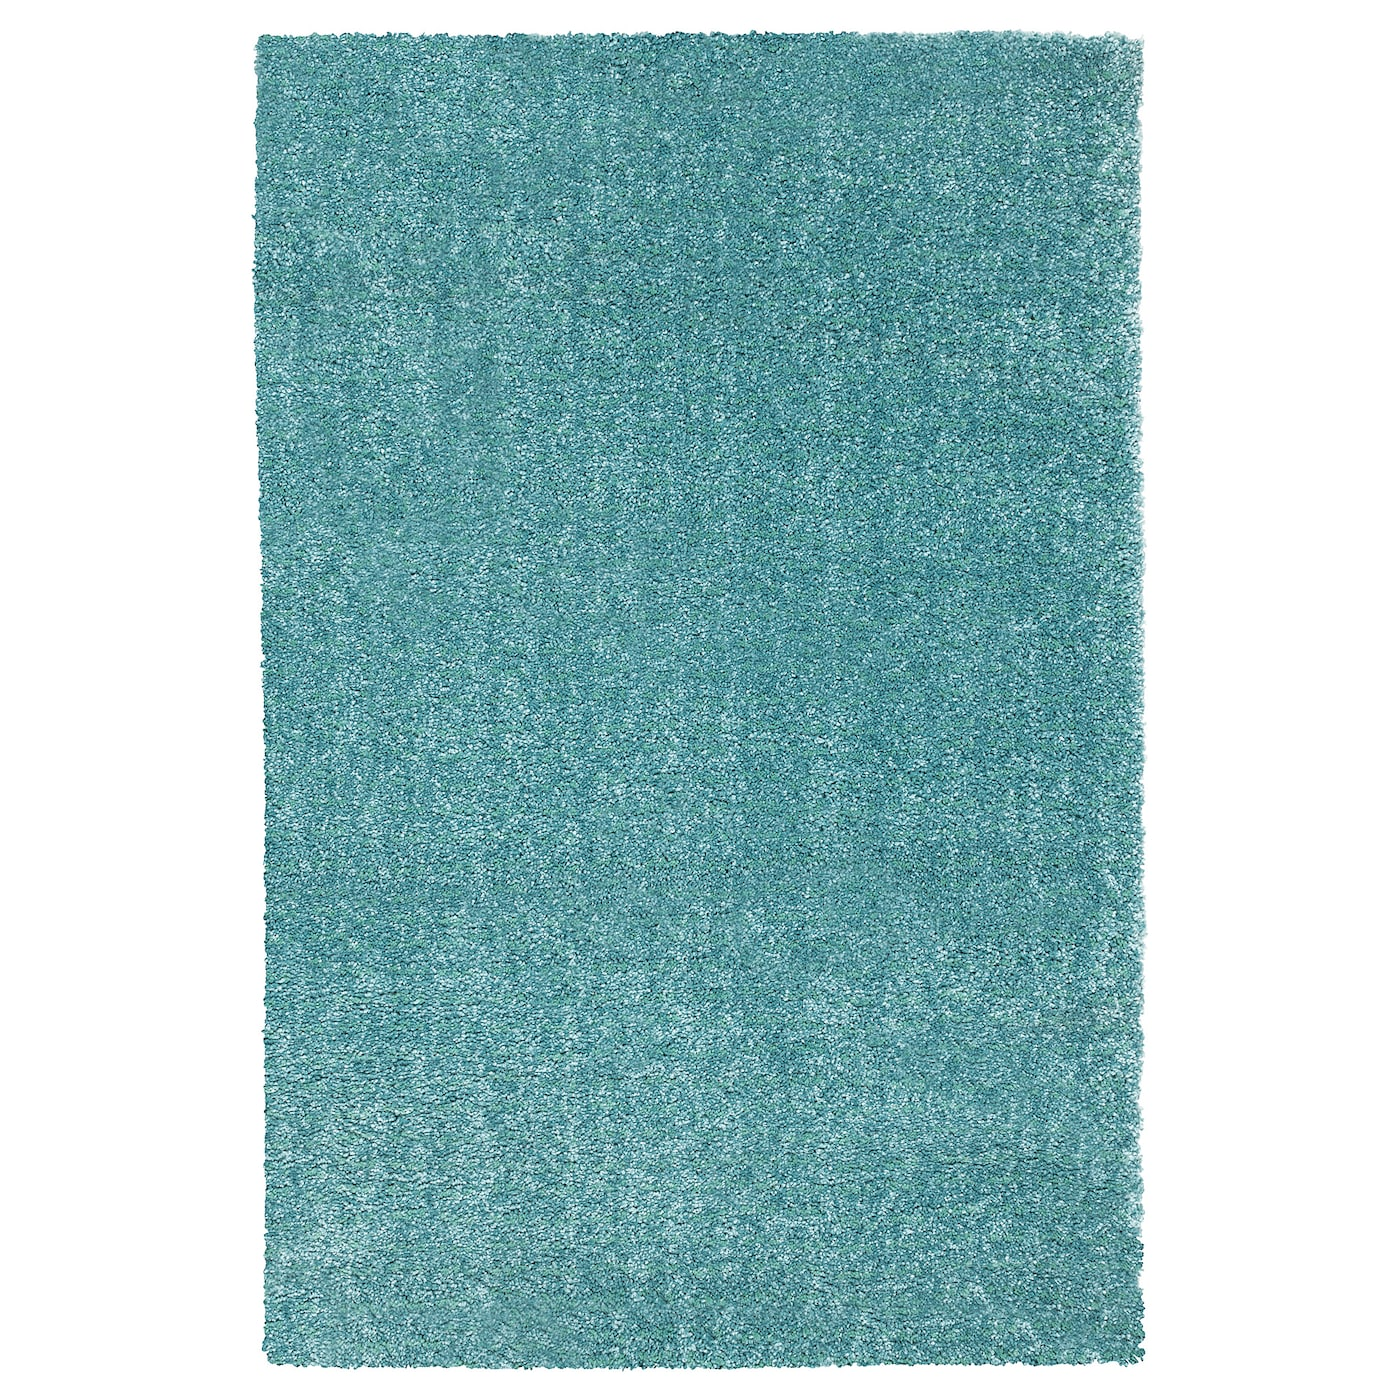 IKEA LANGSTED rug, low pile Durable and will not shed since the rug is made of polypropylene.